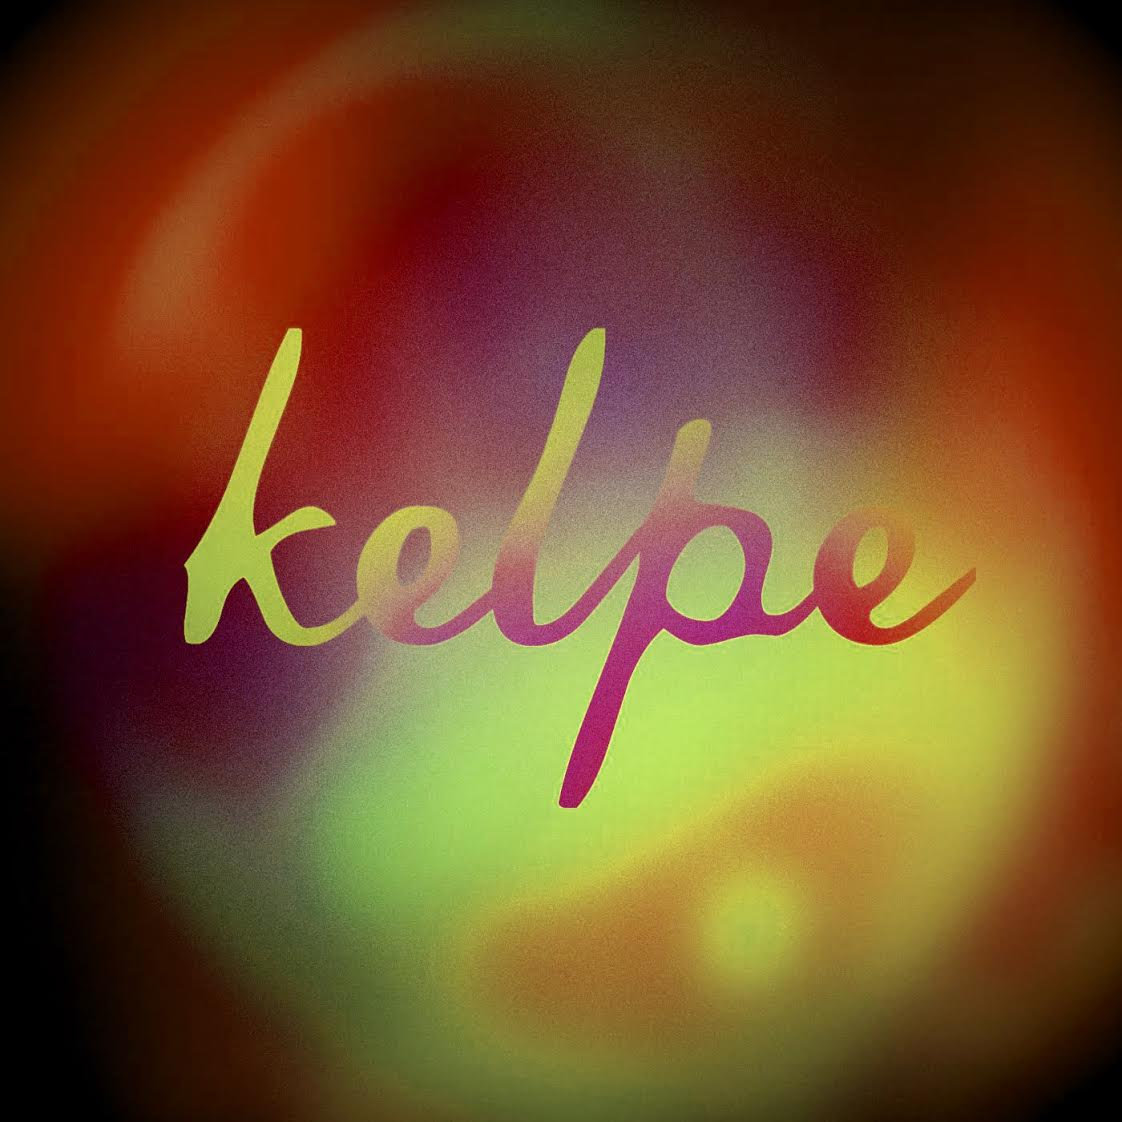 Kelpe - Hekla Prays @ 'Rolly Devore / Hekla Prays' album (alternative, london)